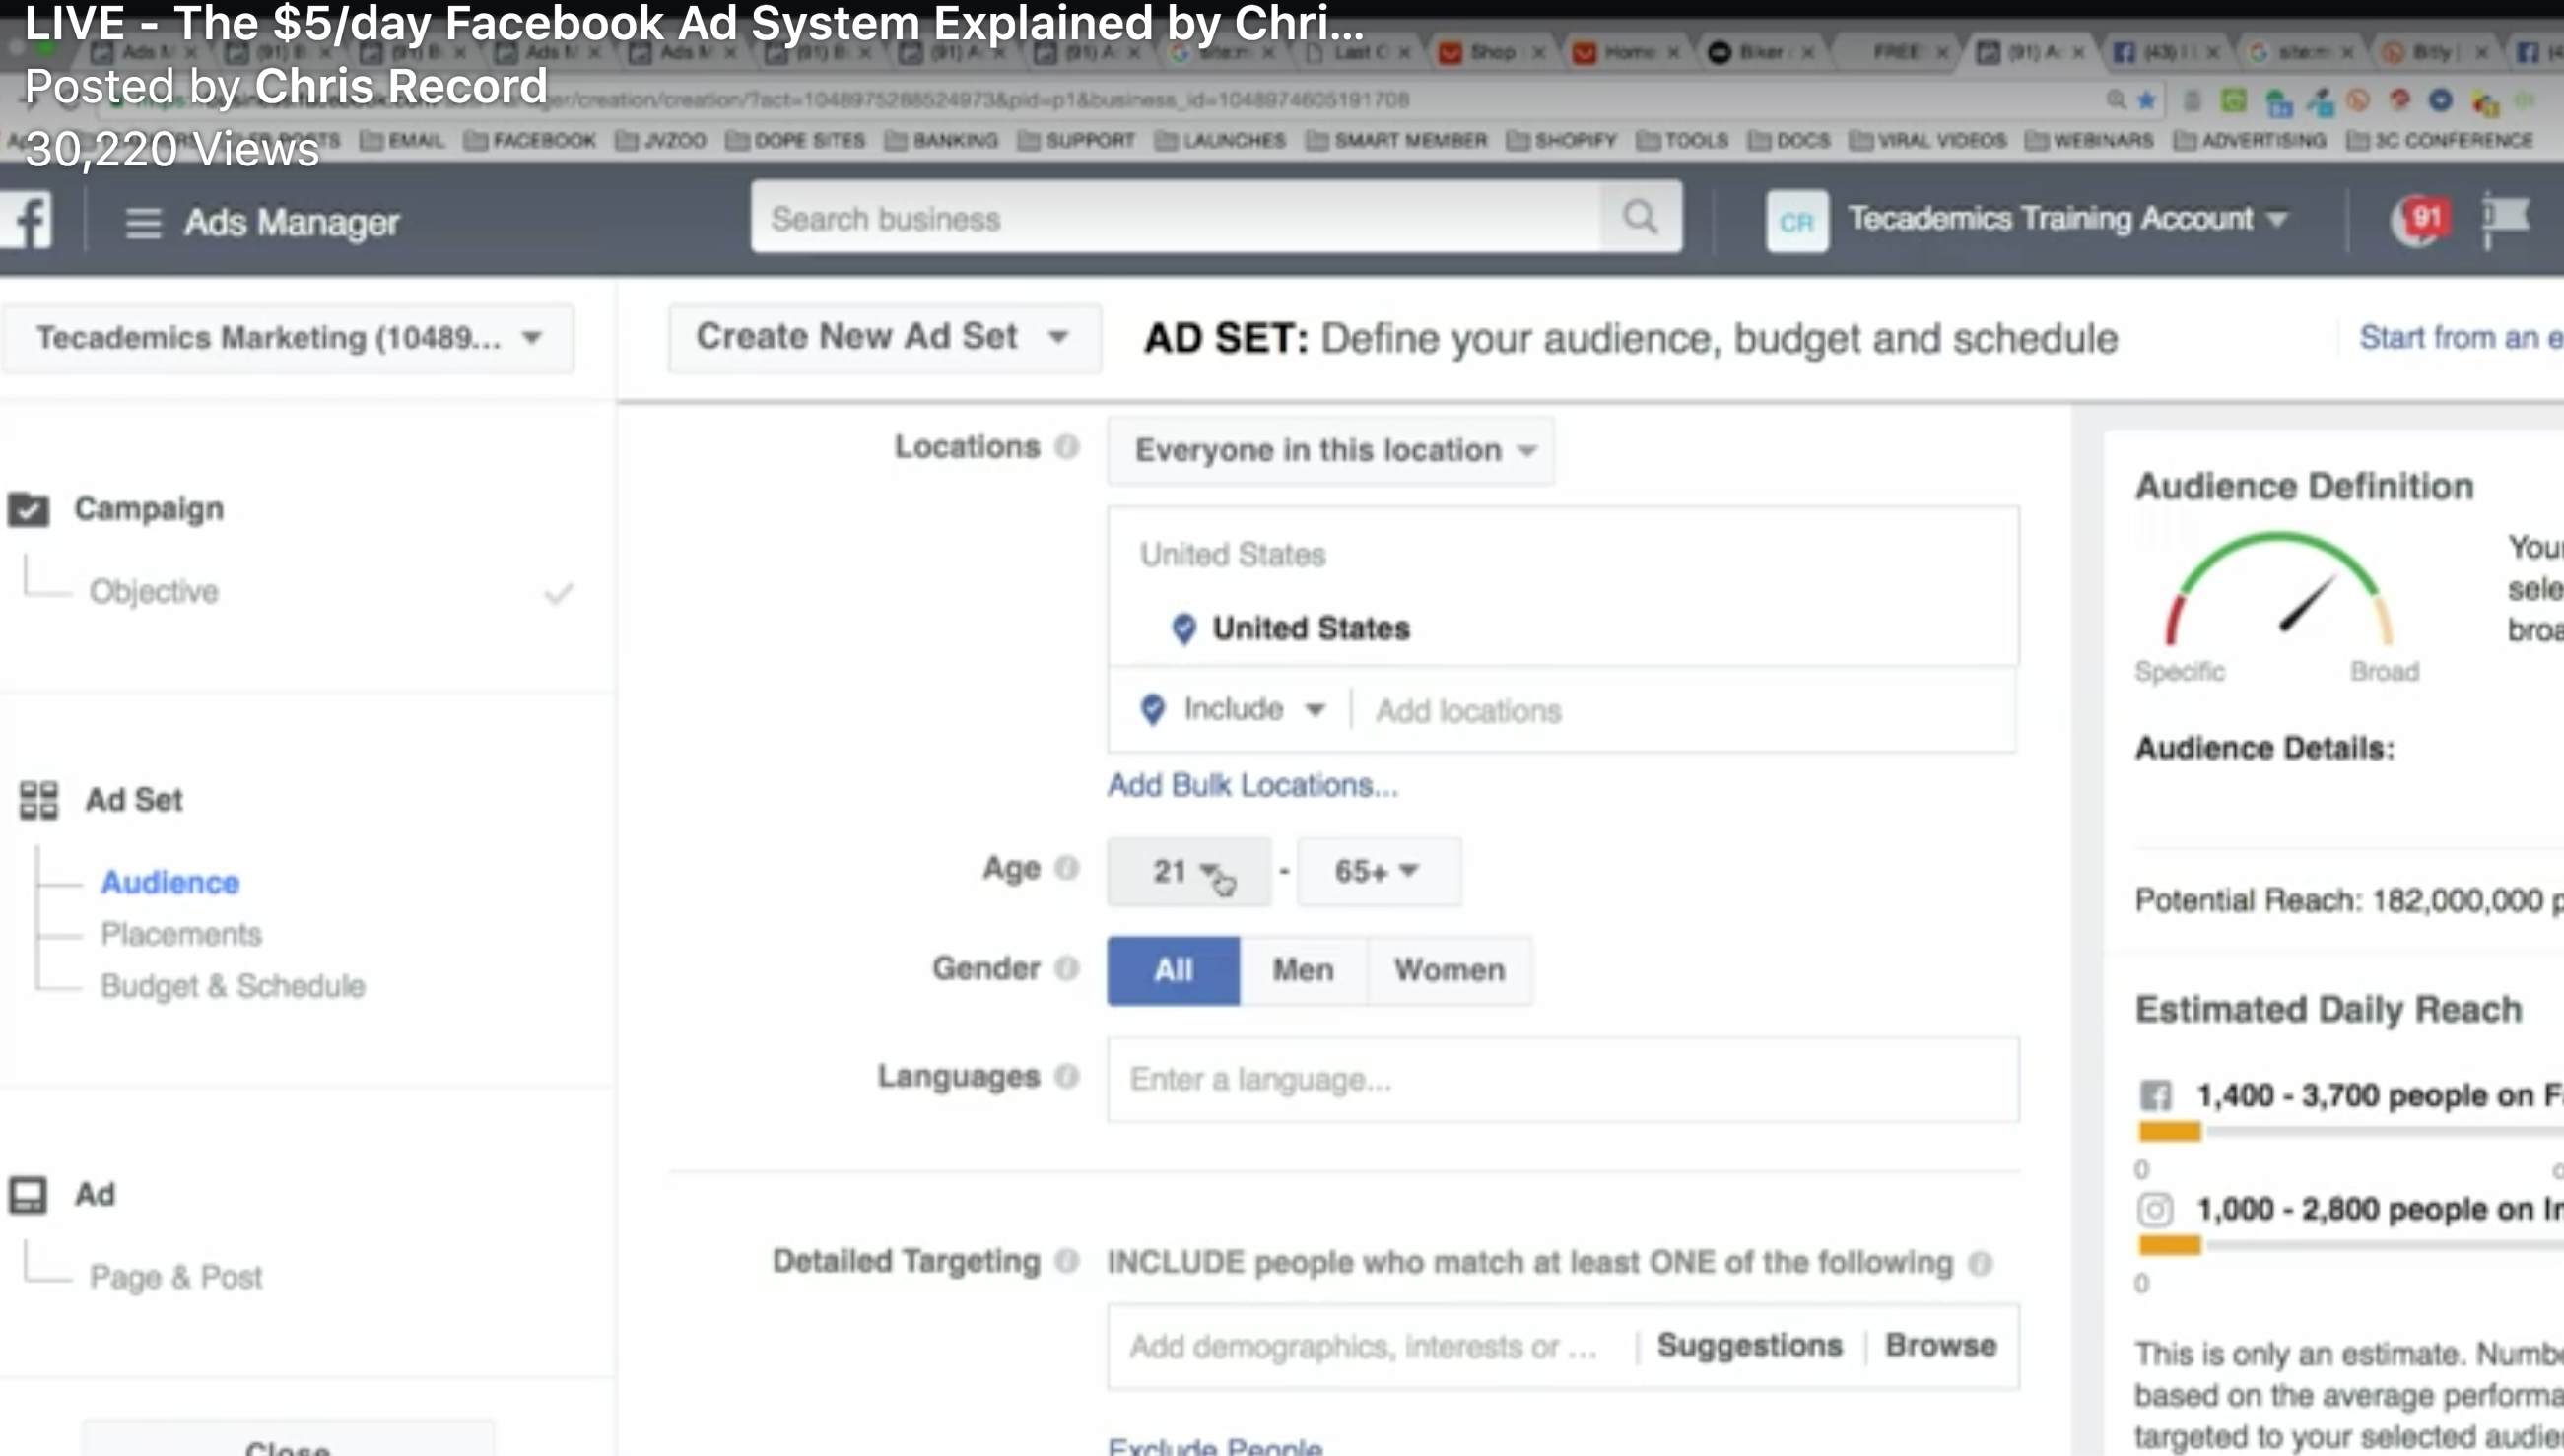 $5/day Facebook Ad System